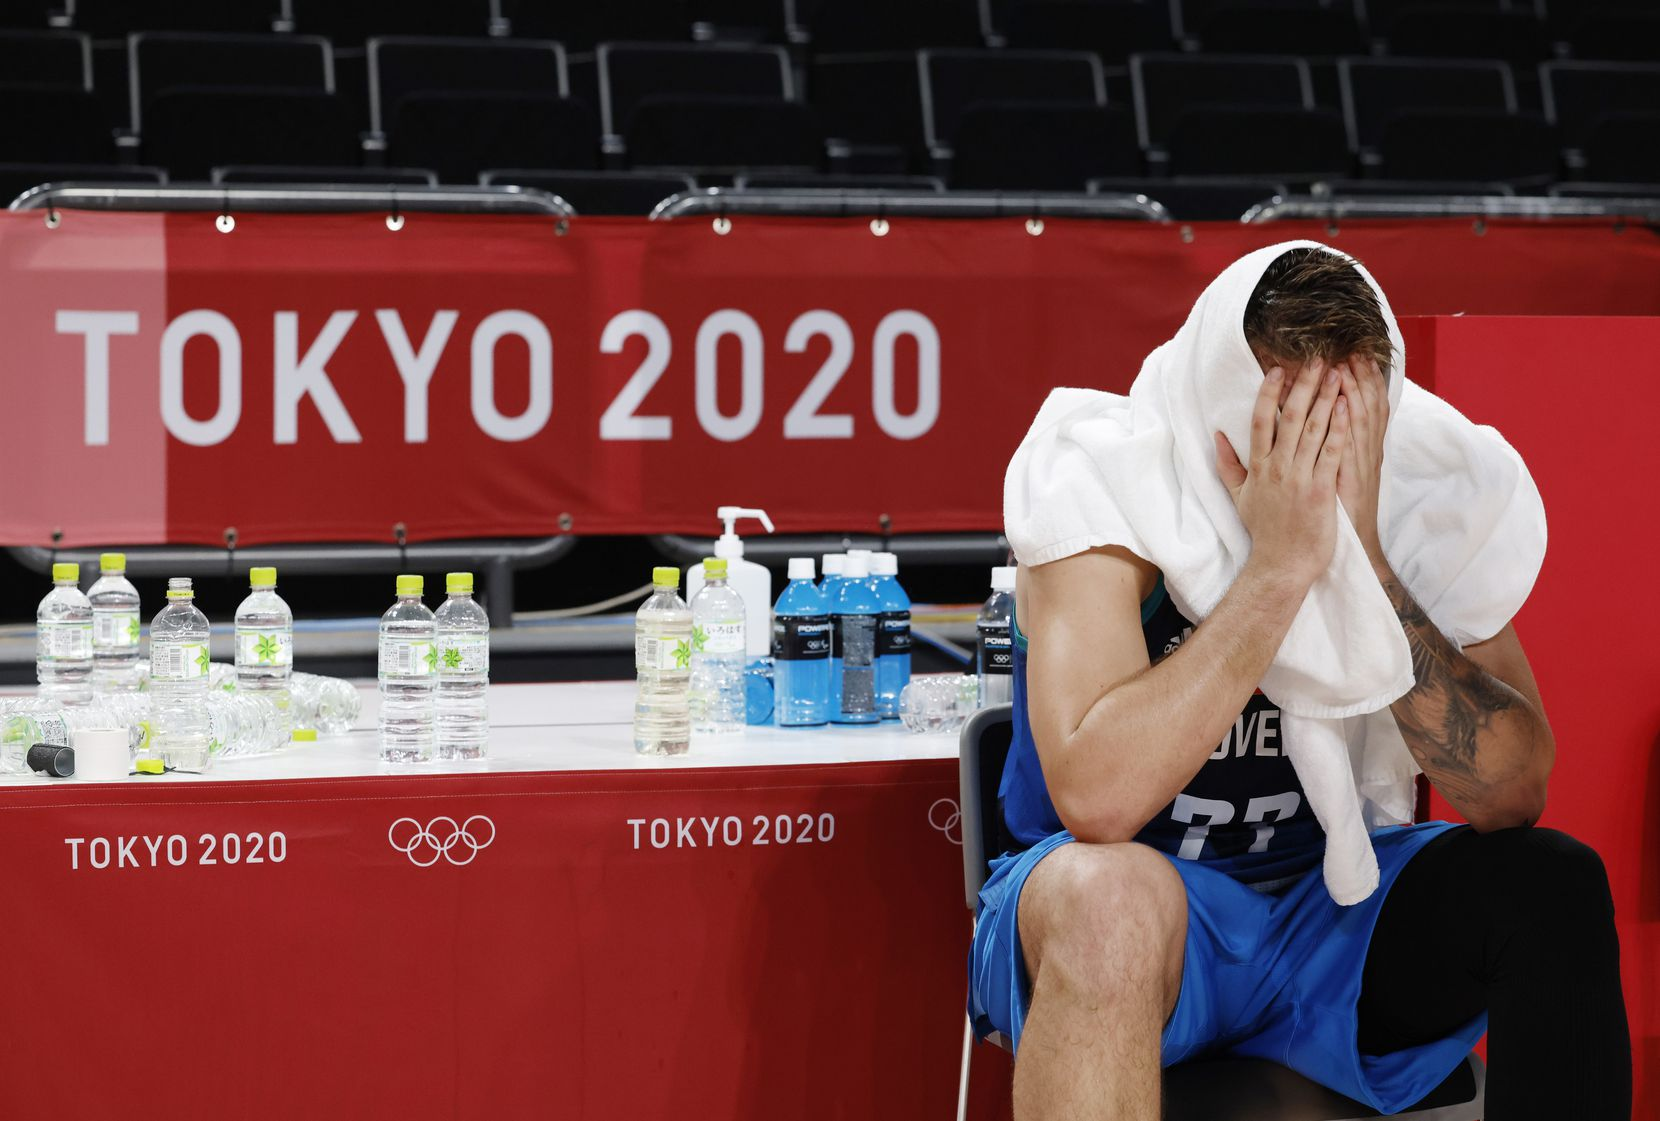 Slovenia's Luka Doncic (77) sits dejected after losing to France 90-89 in a men's basketball semifinal at the postponed 2020 Tokyo Olympics at Saitama Super Arena, on Thursday, August 5, 2021, in Saitama, Japan. France defeated Slovenia 90-89. Slovenia will play in the bronze medal game. (Vernon Bryant/The Dallas Morning News)